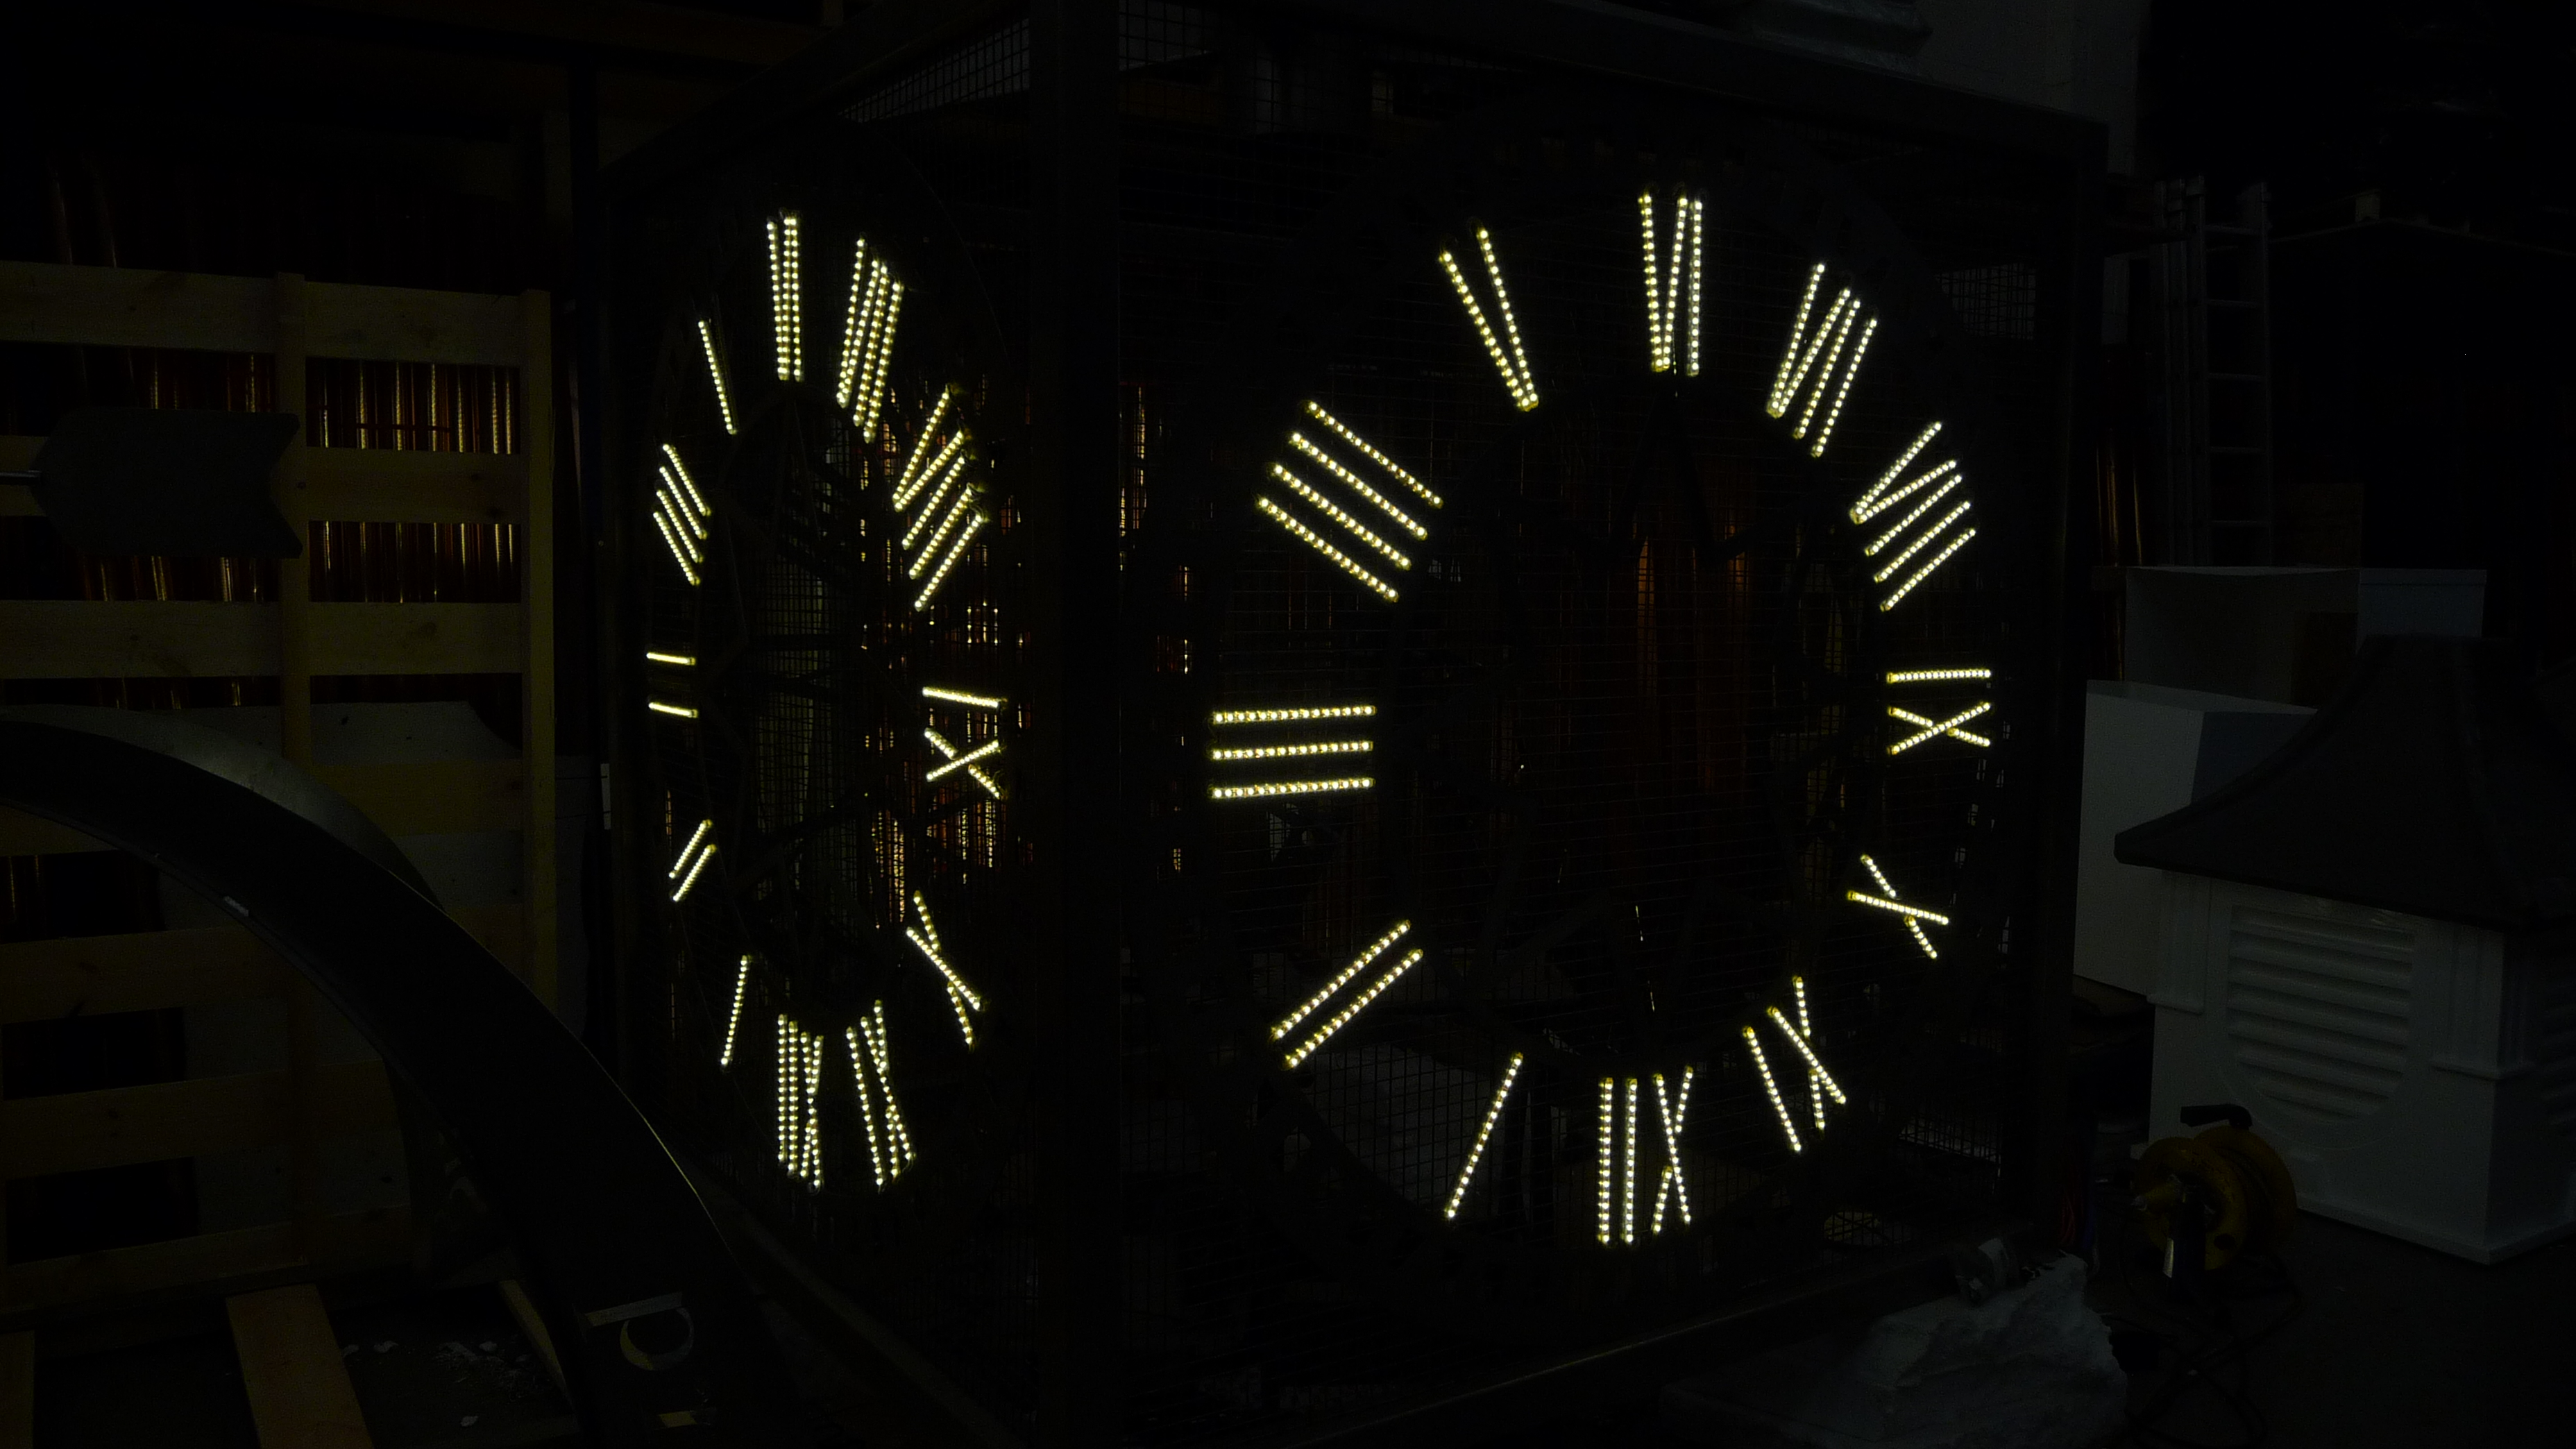 LED lights on Roman numerals